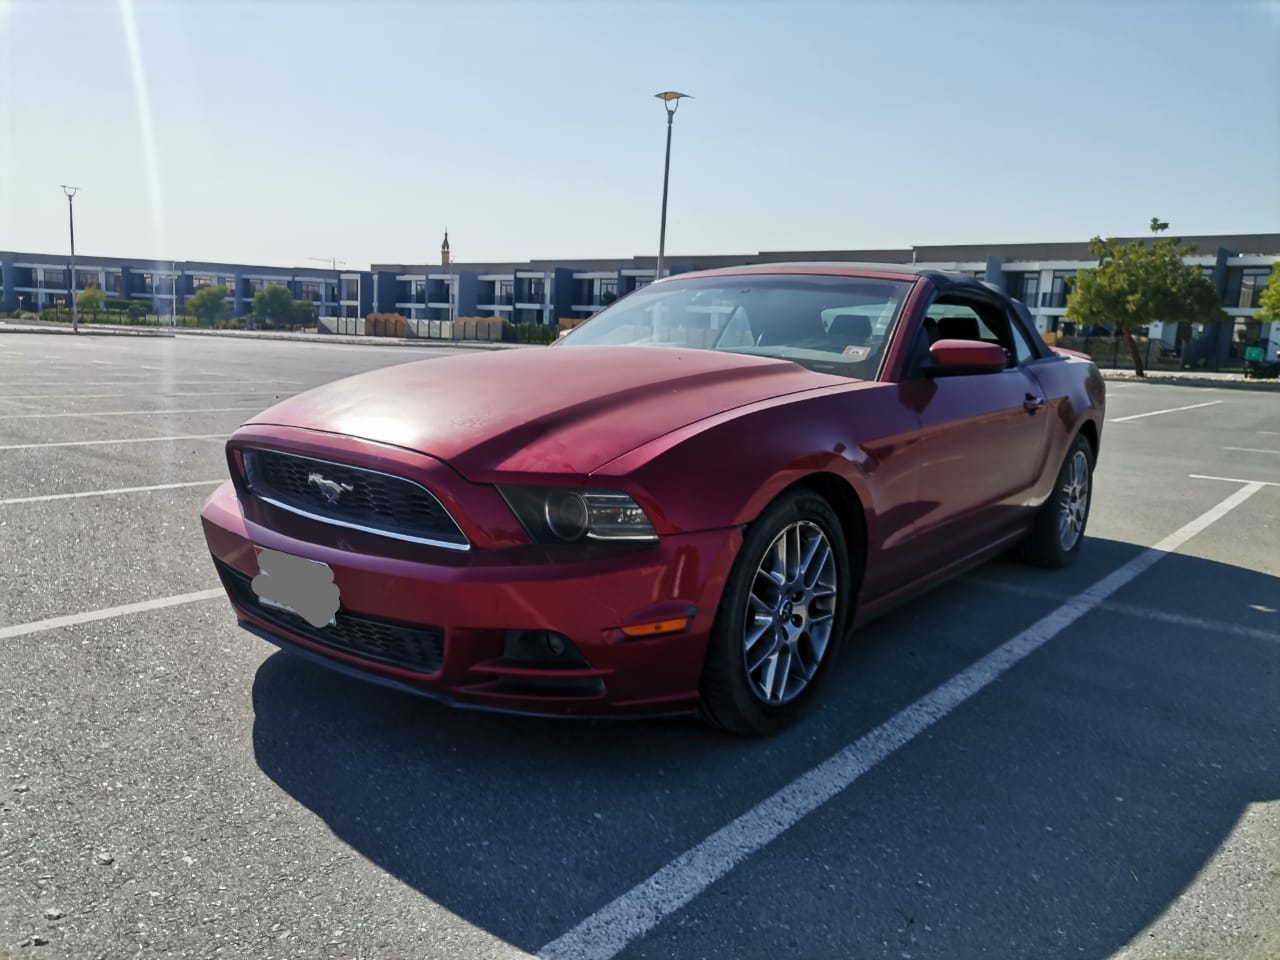 Used Ford Mustang Convertible 3.7L 2013 For Sale In Dubai